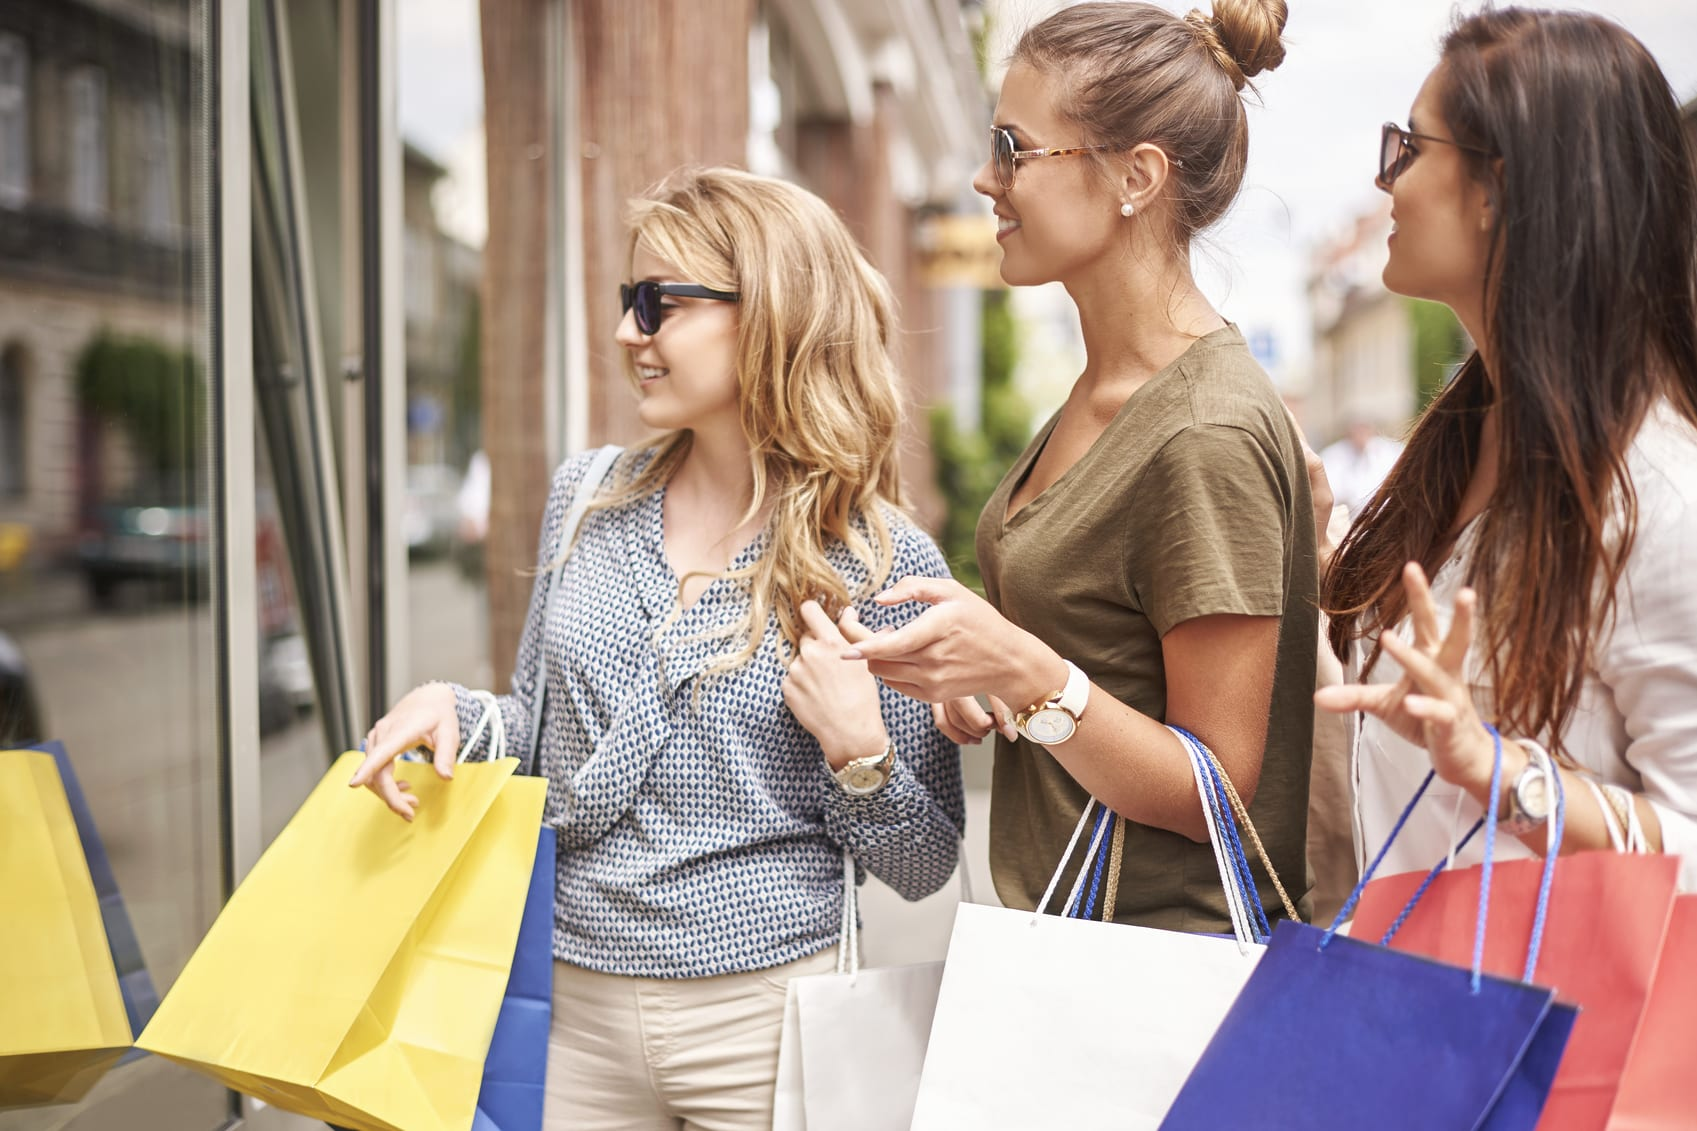 More Shopping At East Hills For Chestermere Residents..